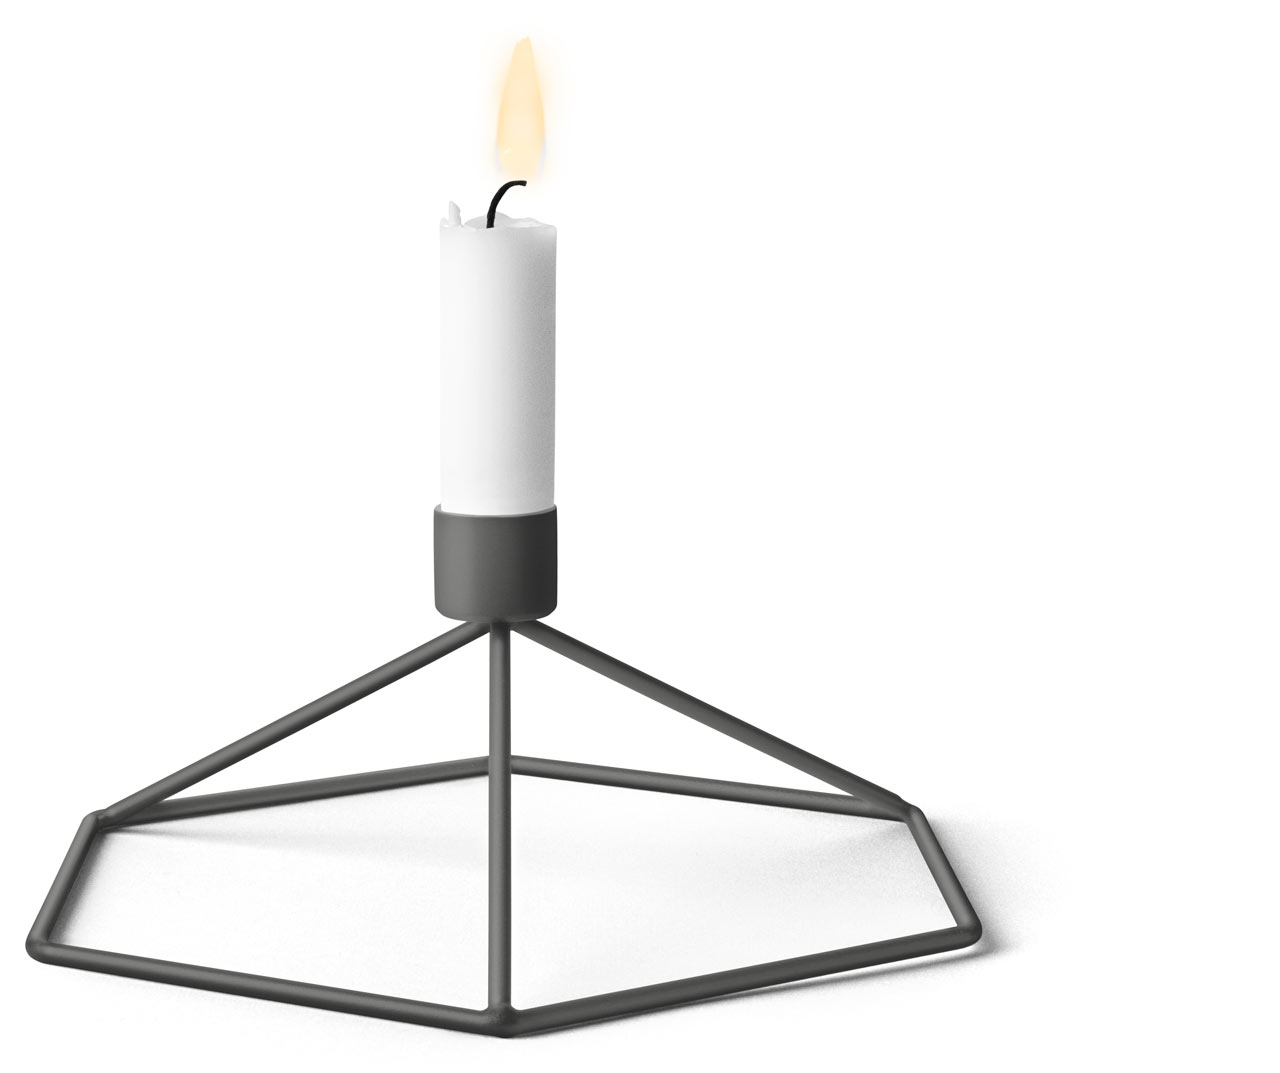 POV-candleholder-tabletop-grey-menu.